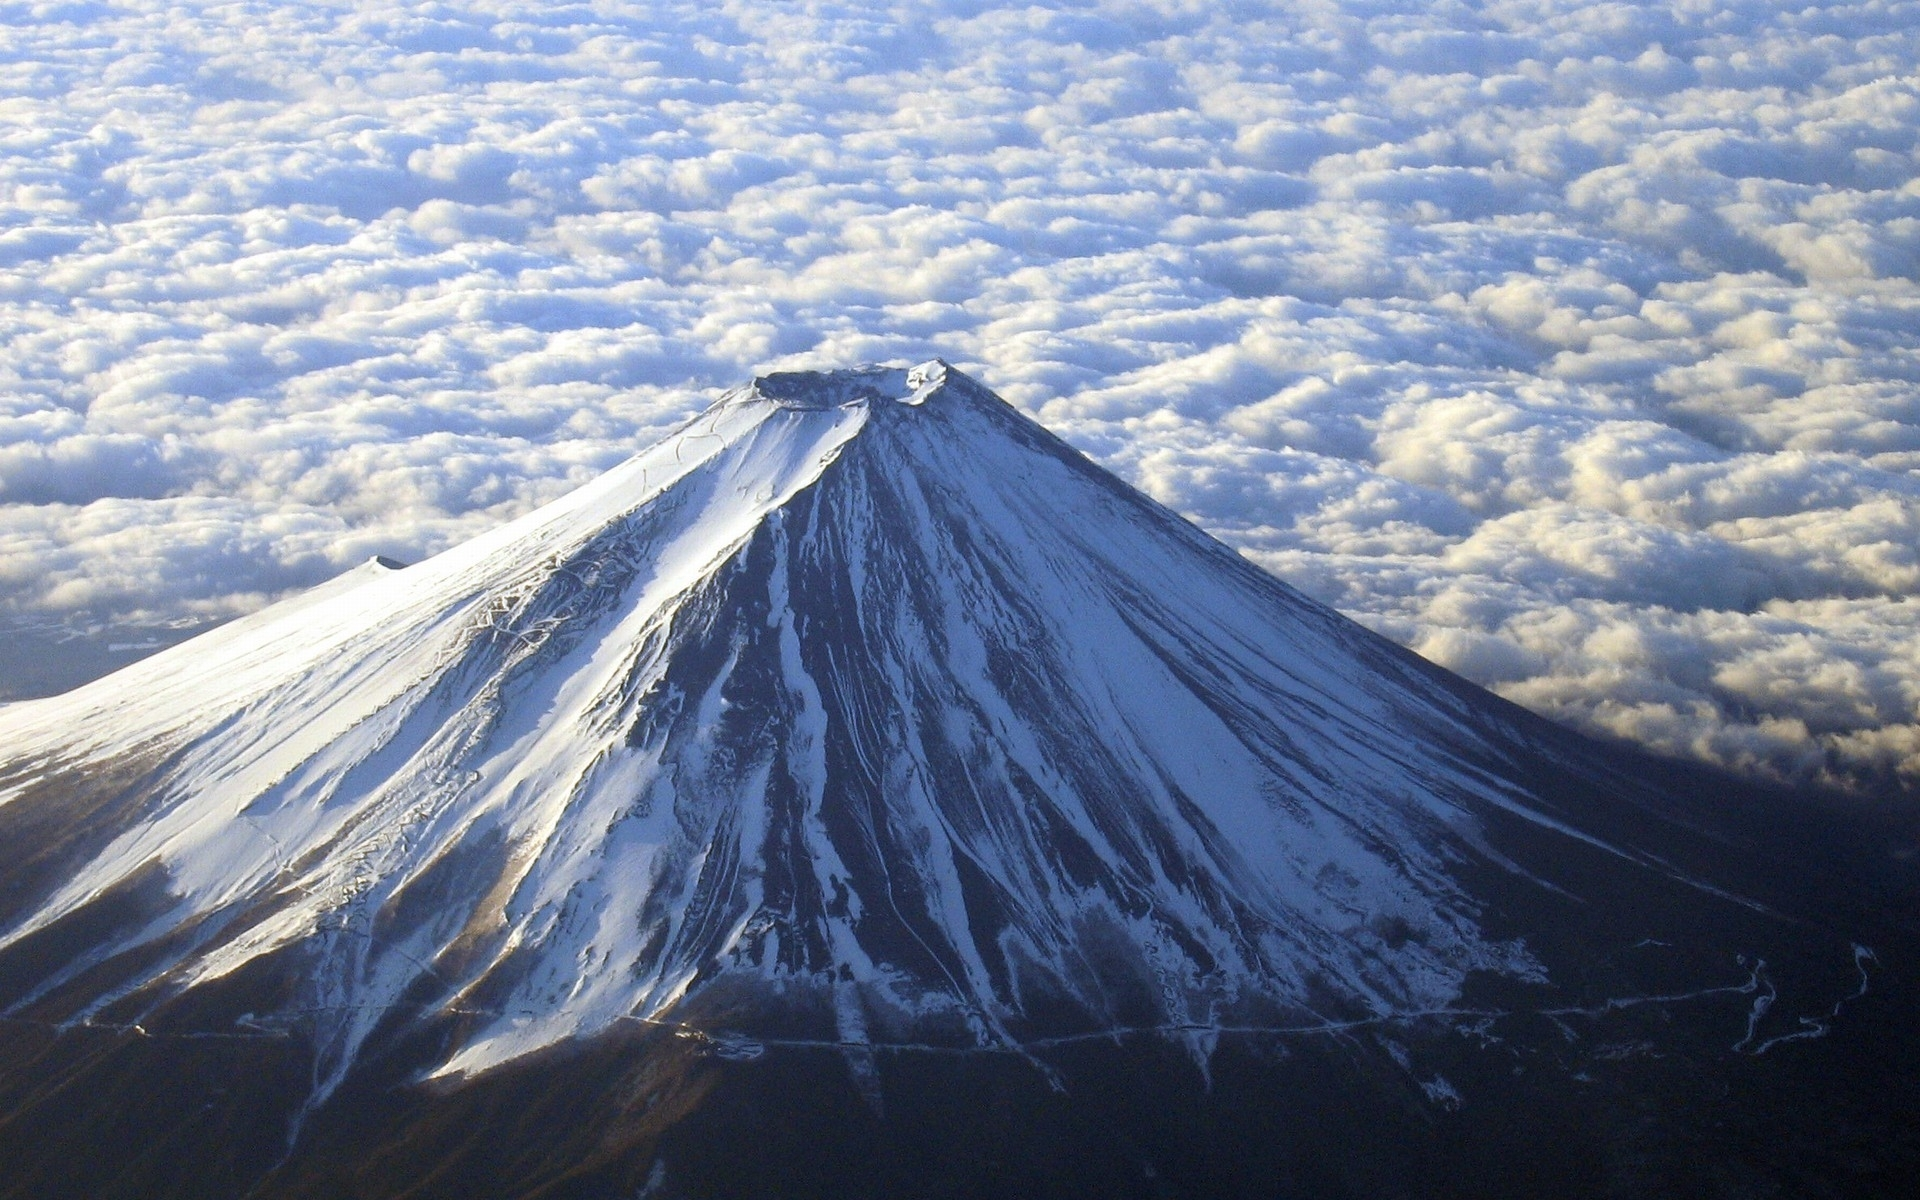 Mount Fuji Japan wallpapers Mount Fuji Japan stock photos 1920x1200